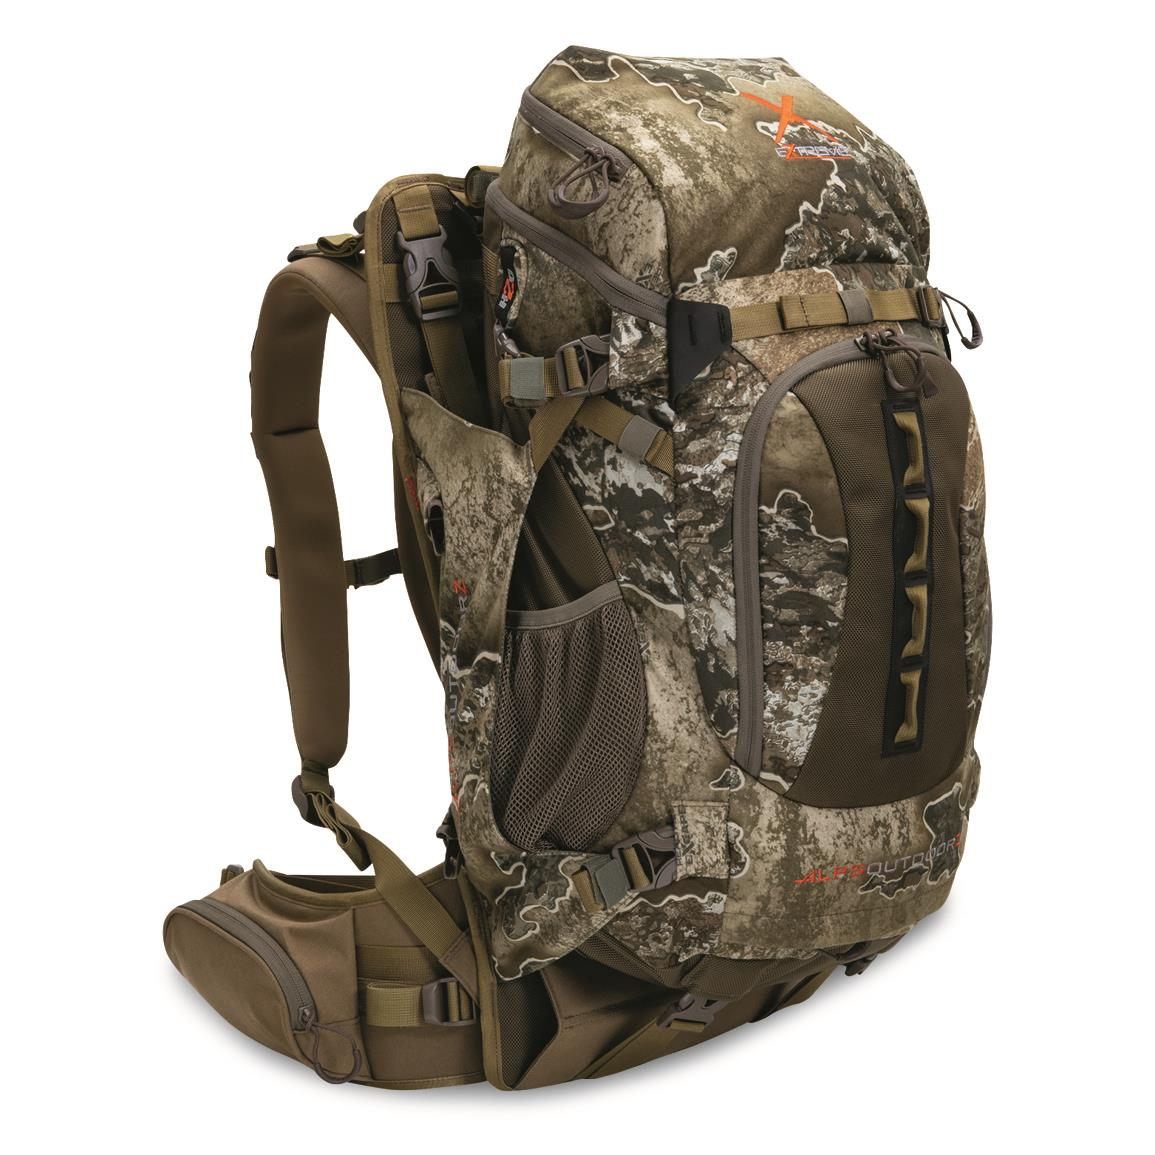 ALPS OutdoorZ Hybrid X Hunting Pack, Realtree Excape